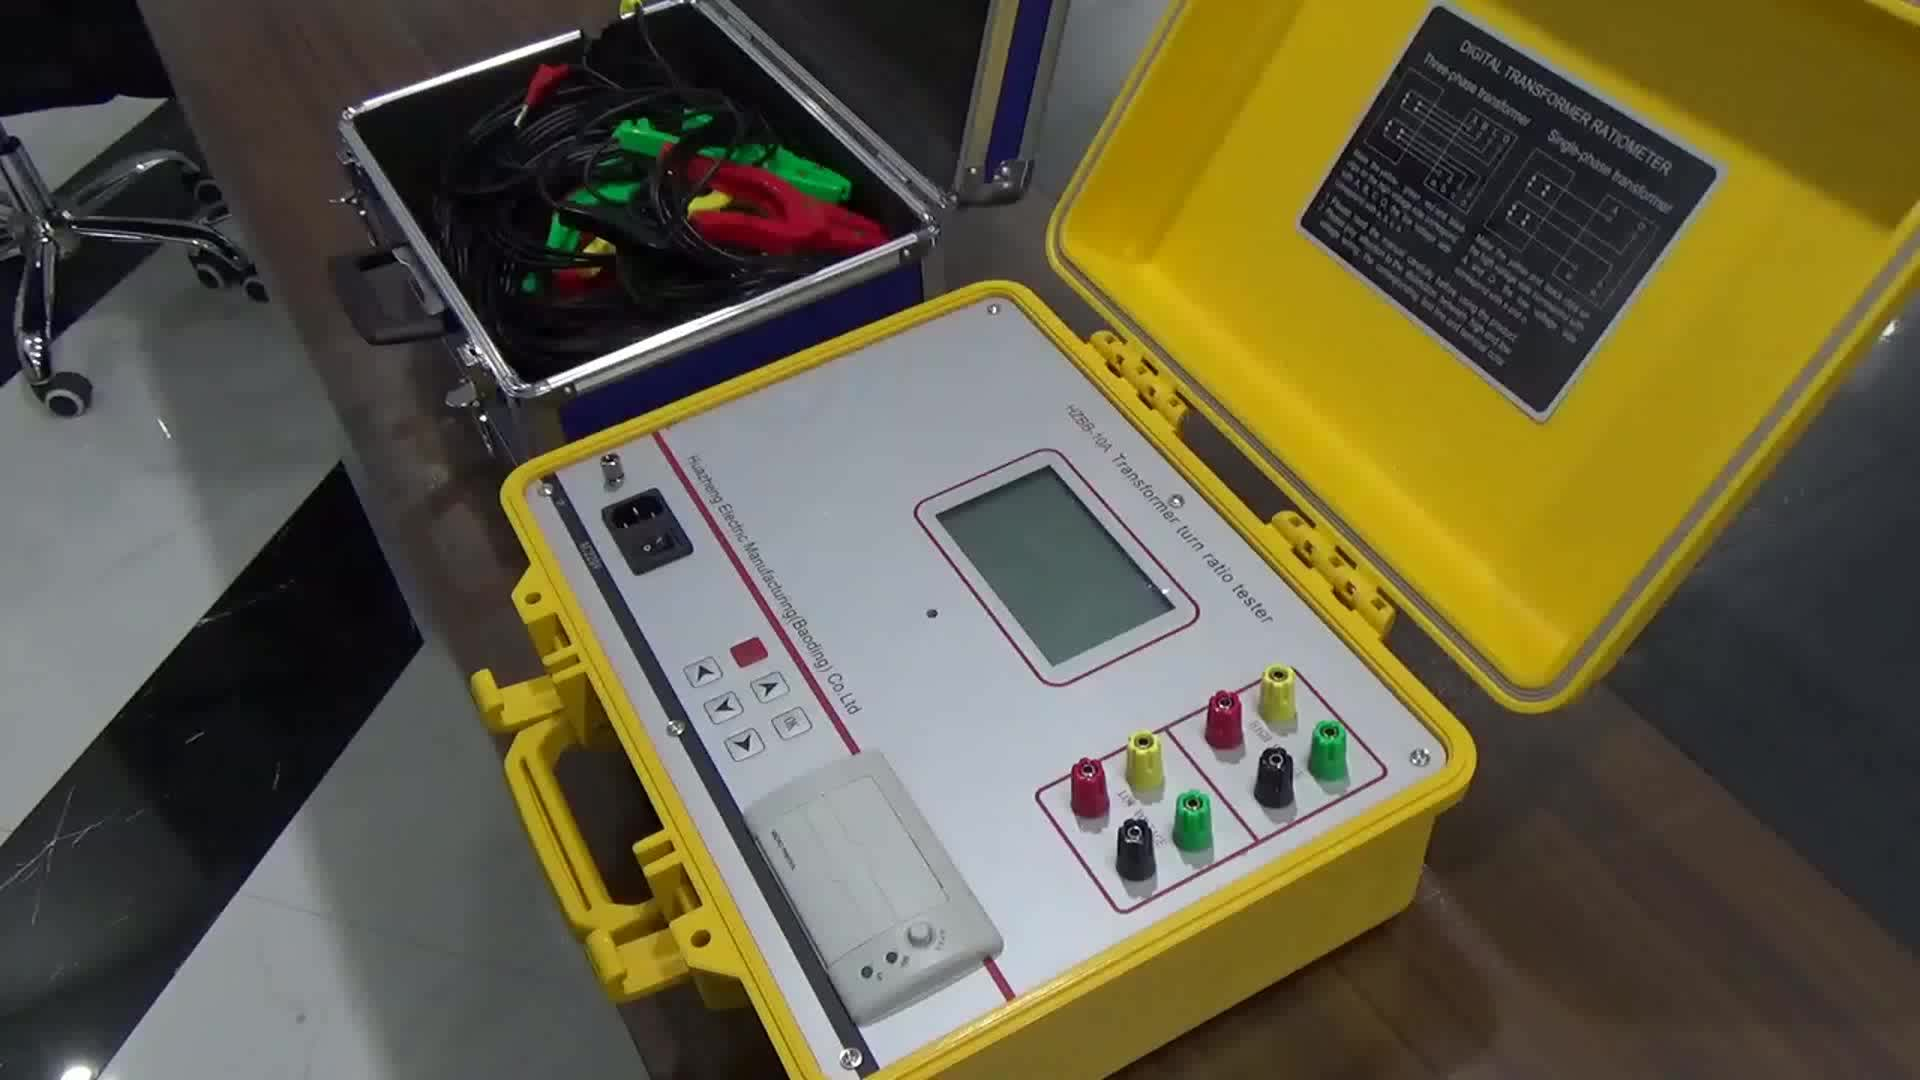 Ttr Tester Digital Transformer Turns Ratio Meter